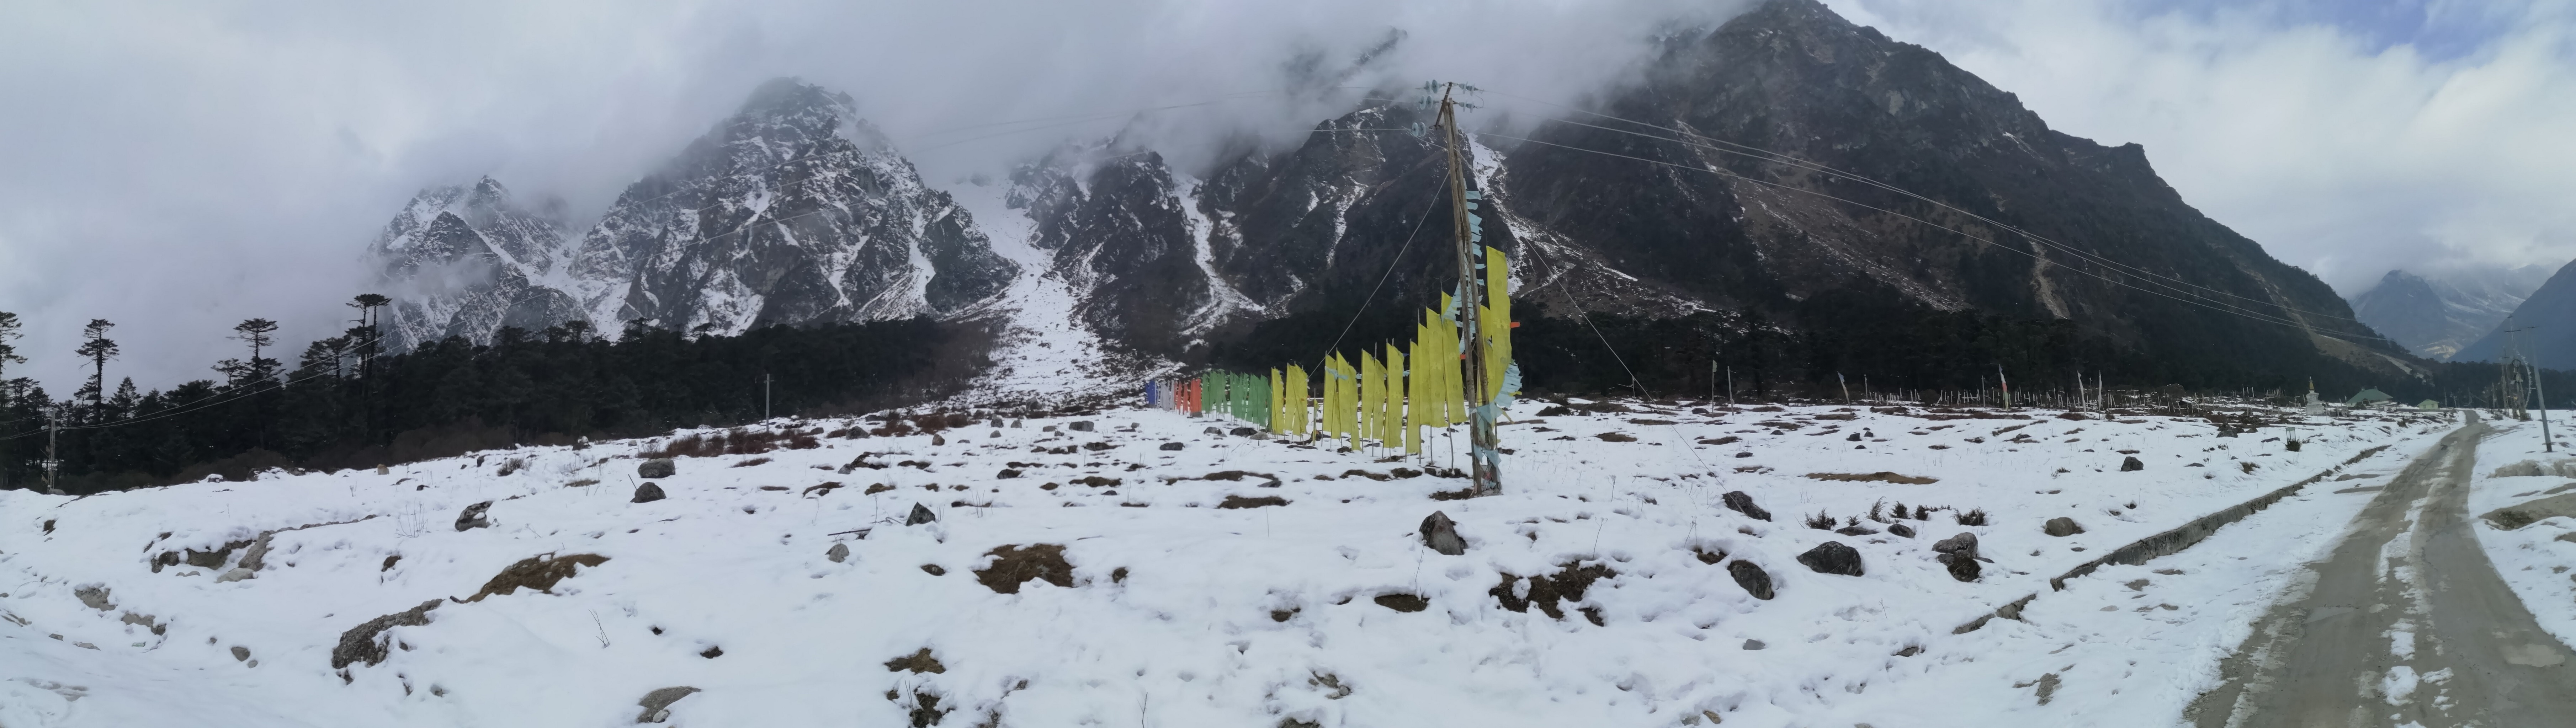 Flags at Yumthang